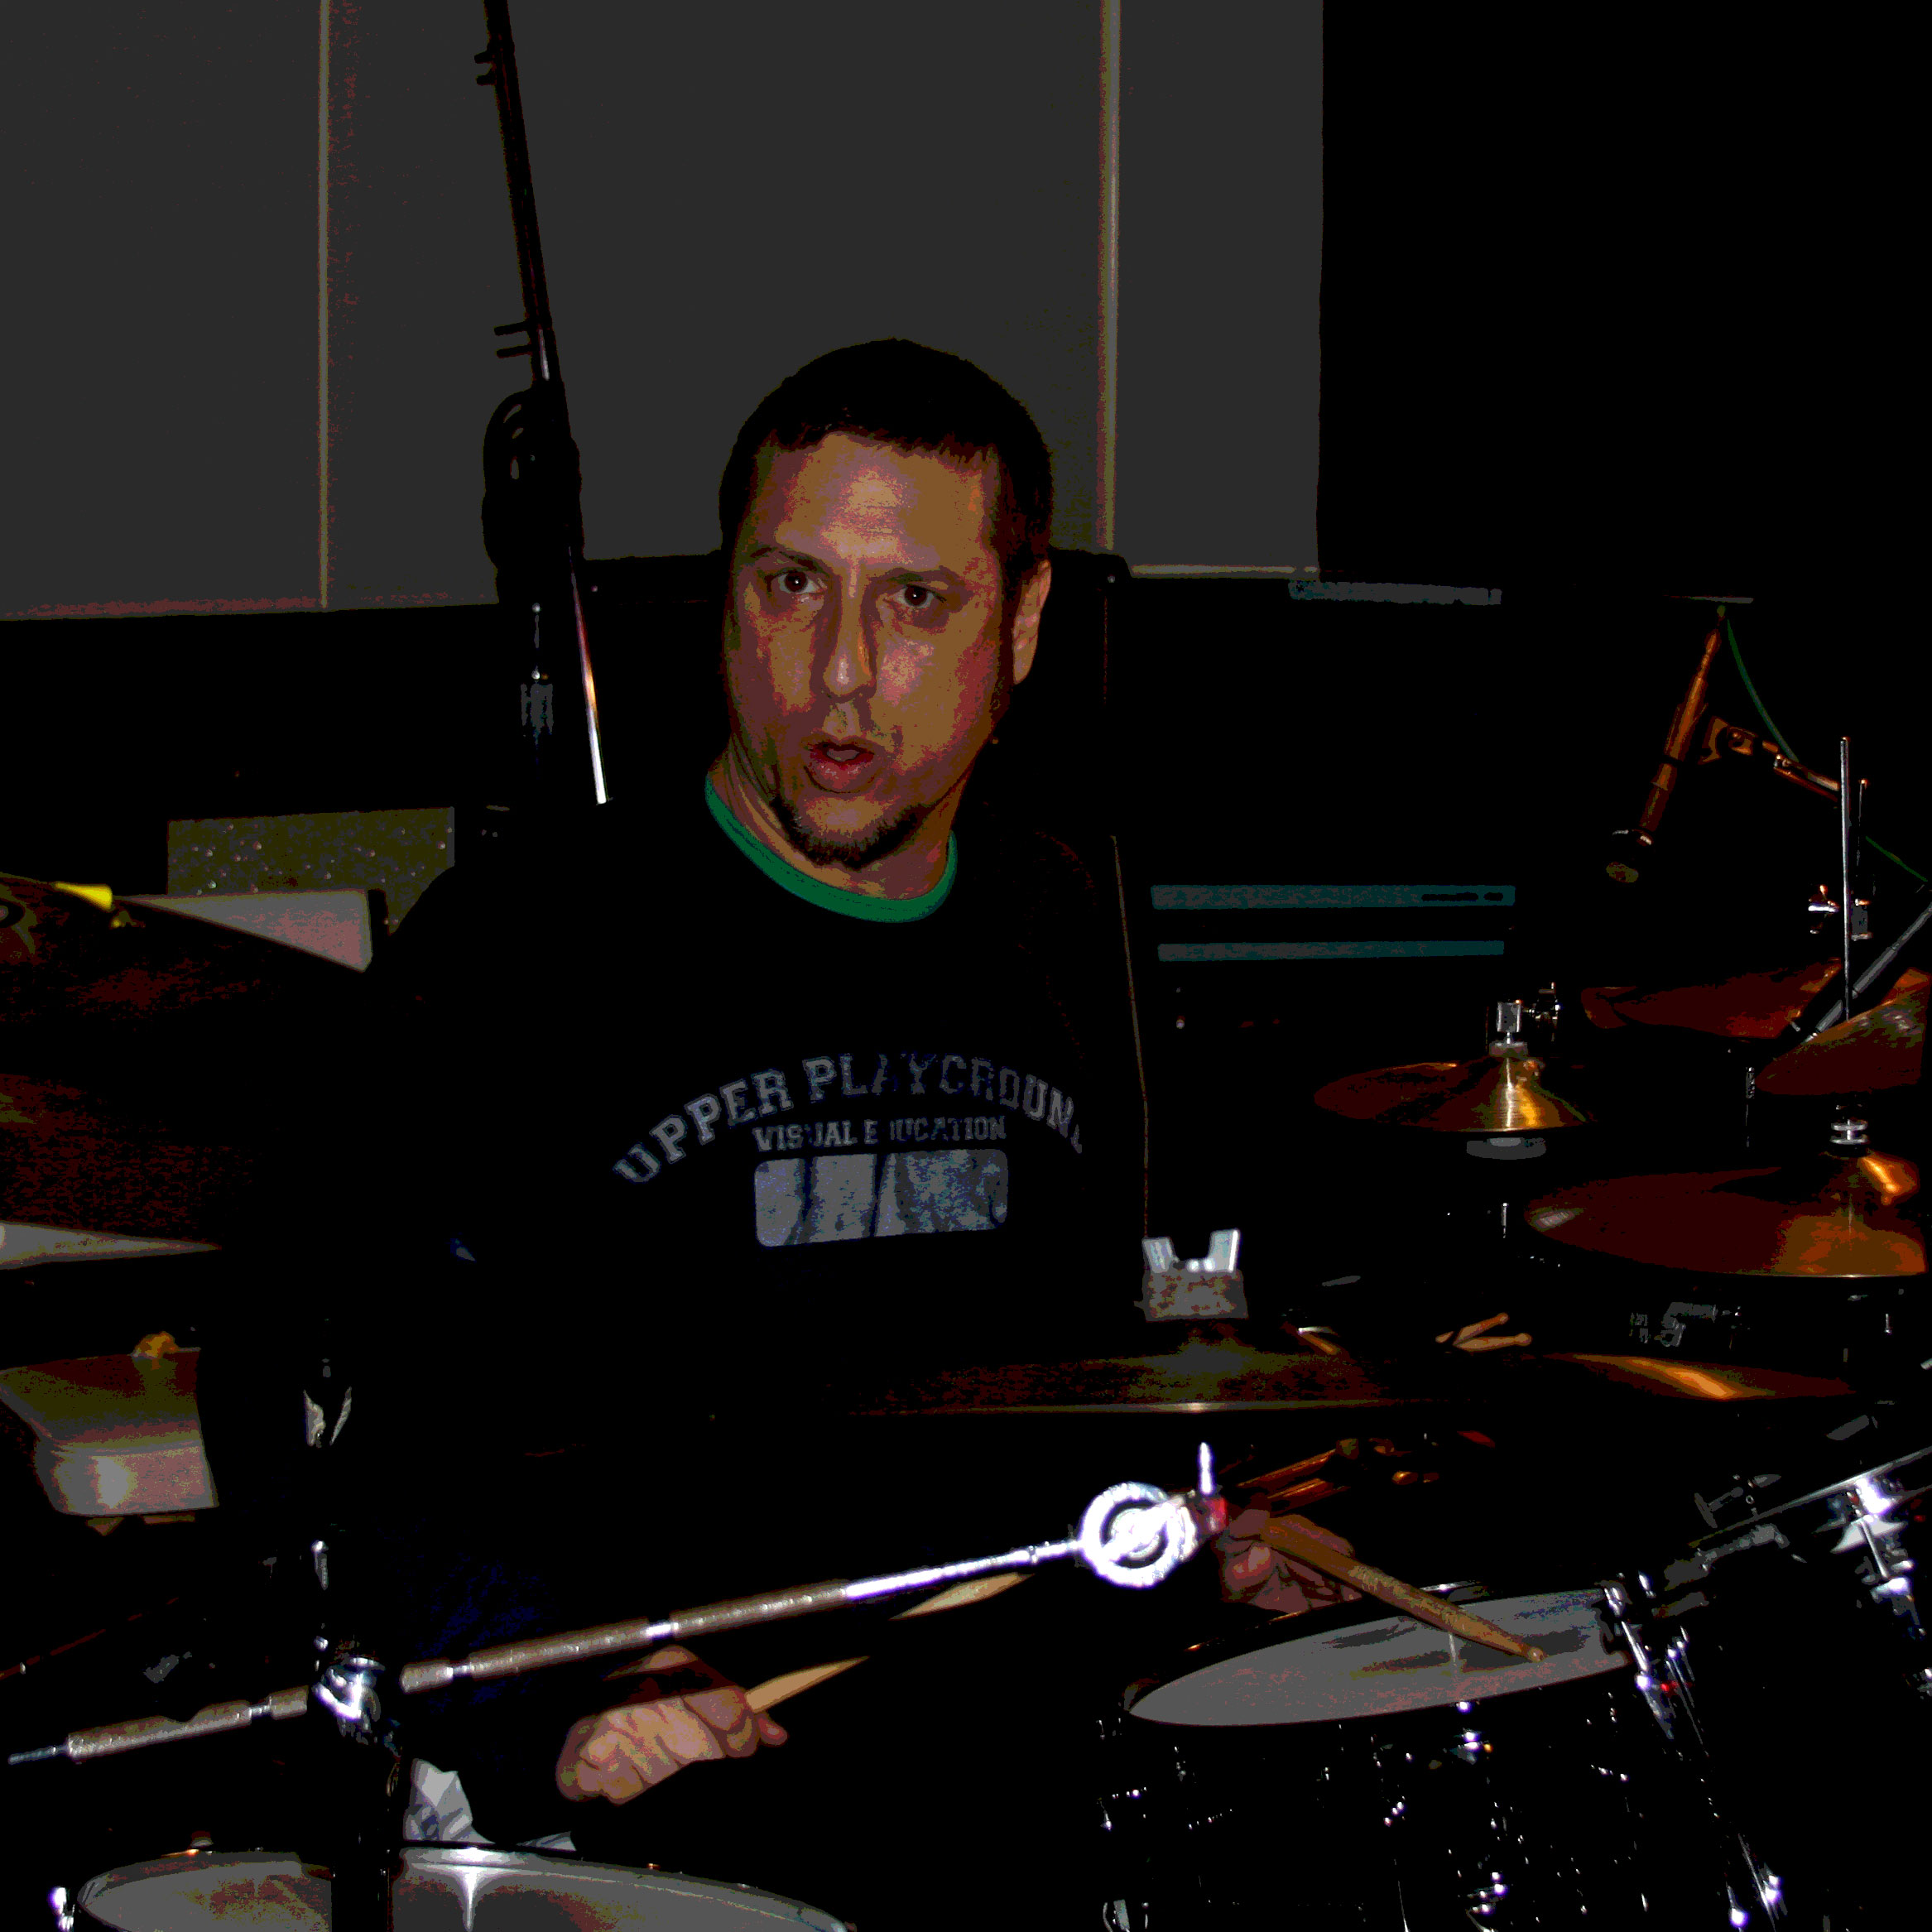 Andy Korn about to beat the living shit out of his drums.